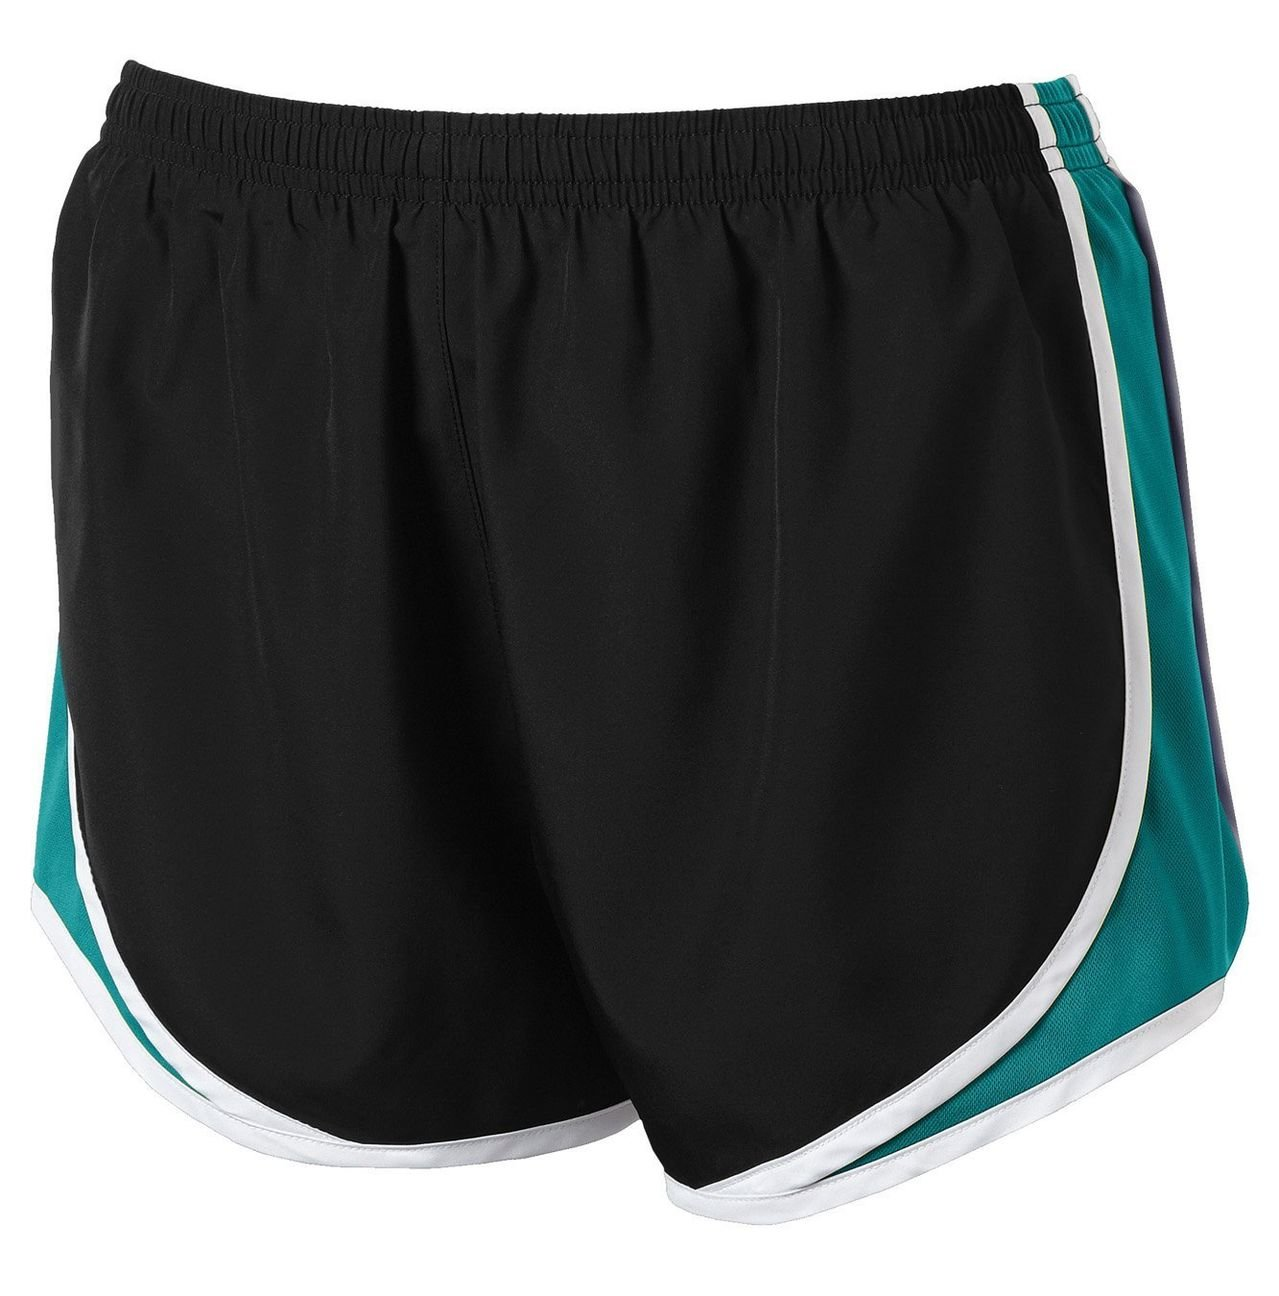 Clothe Co. Ladies Moisture Wicking Sport Running Shorts, Black/Tropic Blue/White, S by Clothe Co. (Image #1)